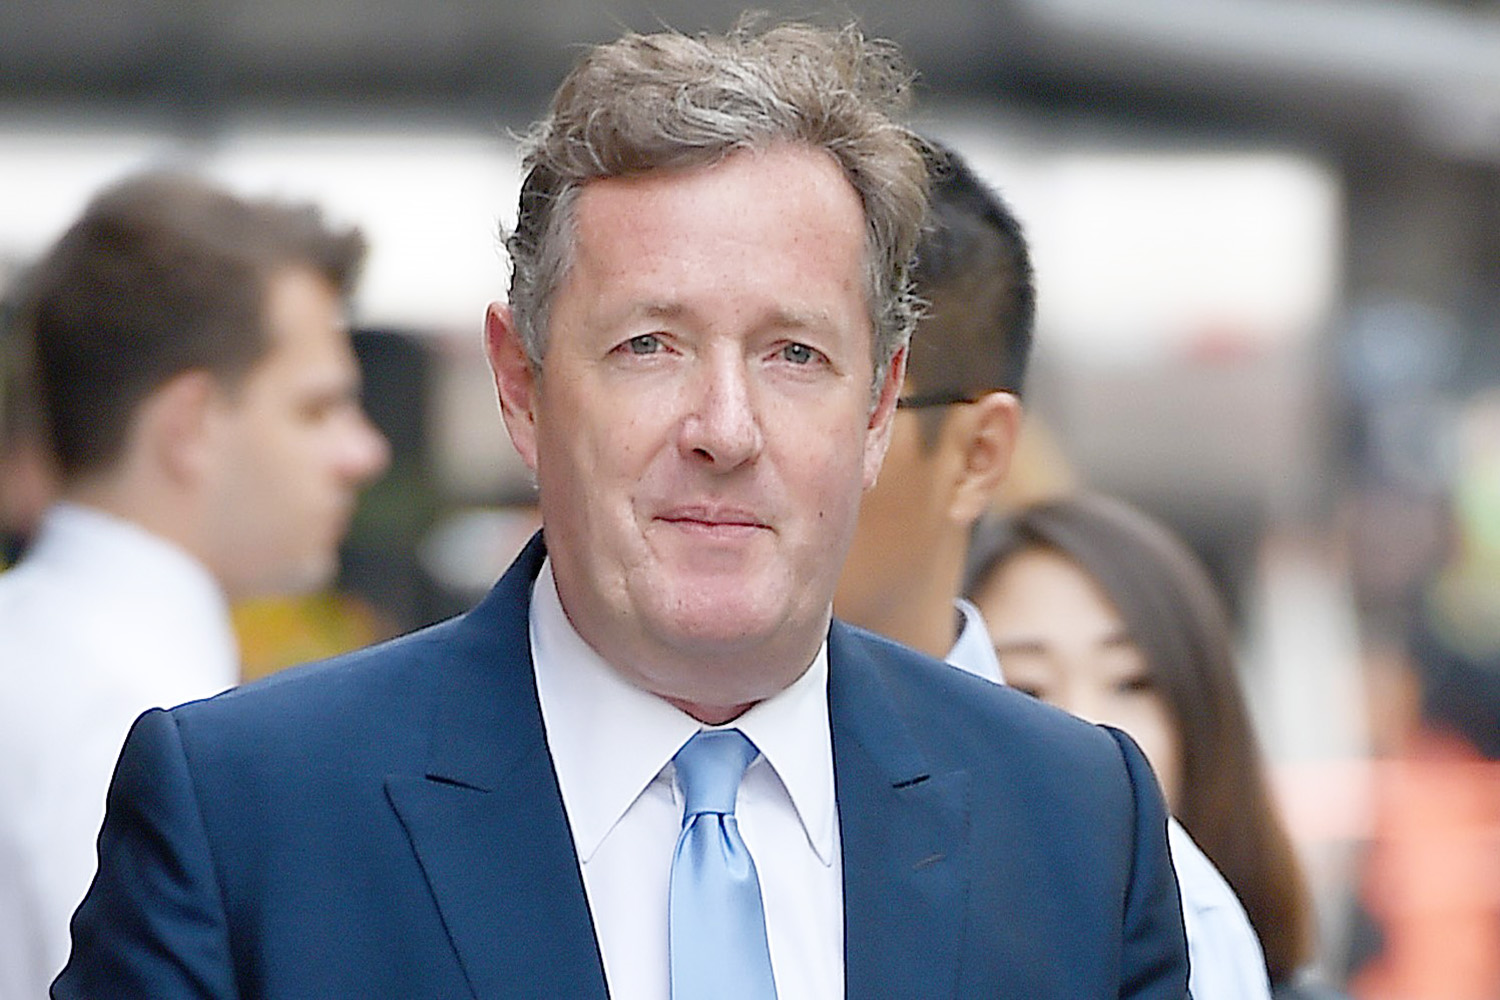 Piers Morgan fans go wild as he shares photo of his 'handsome' brother